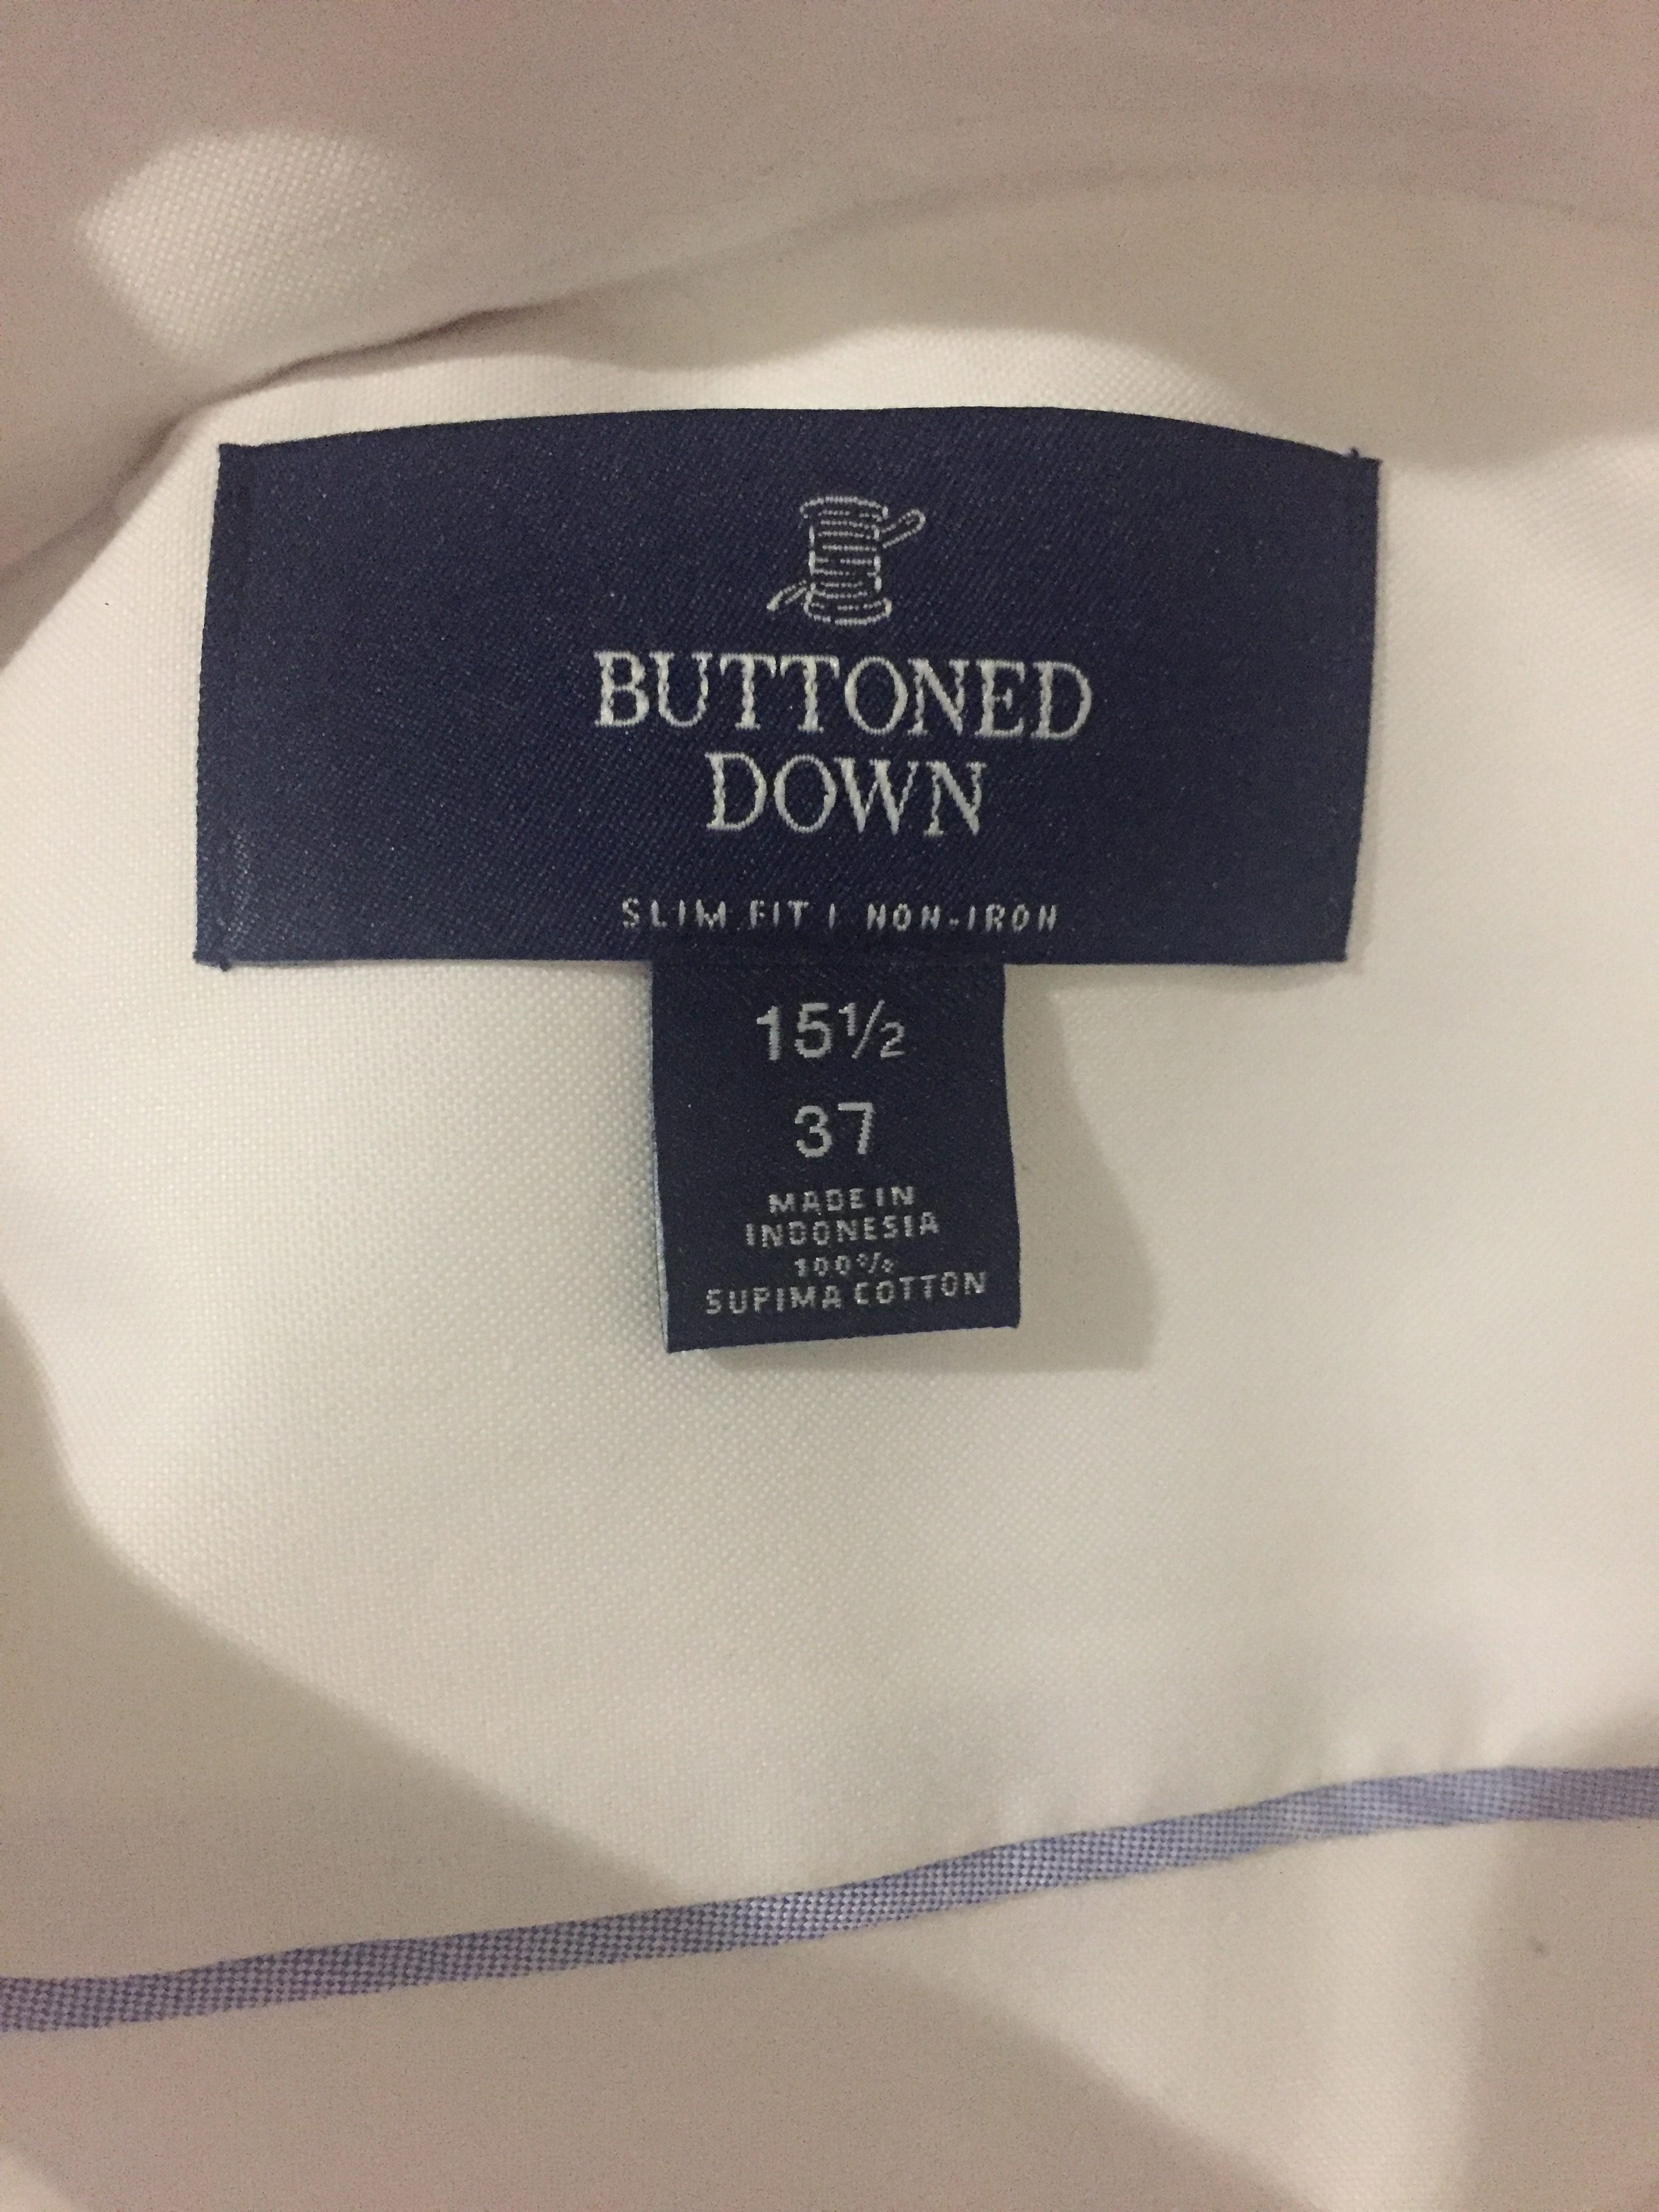 Amazon Buttoned Down shirt fit guide - label picture